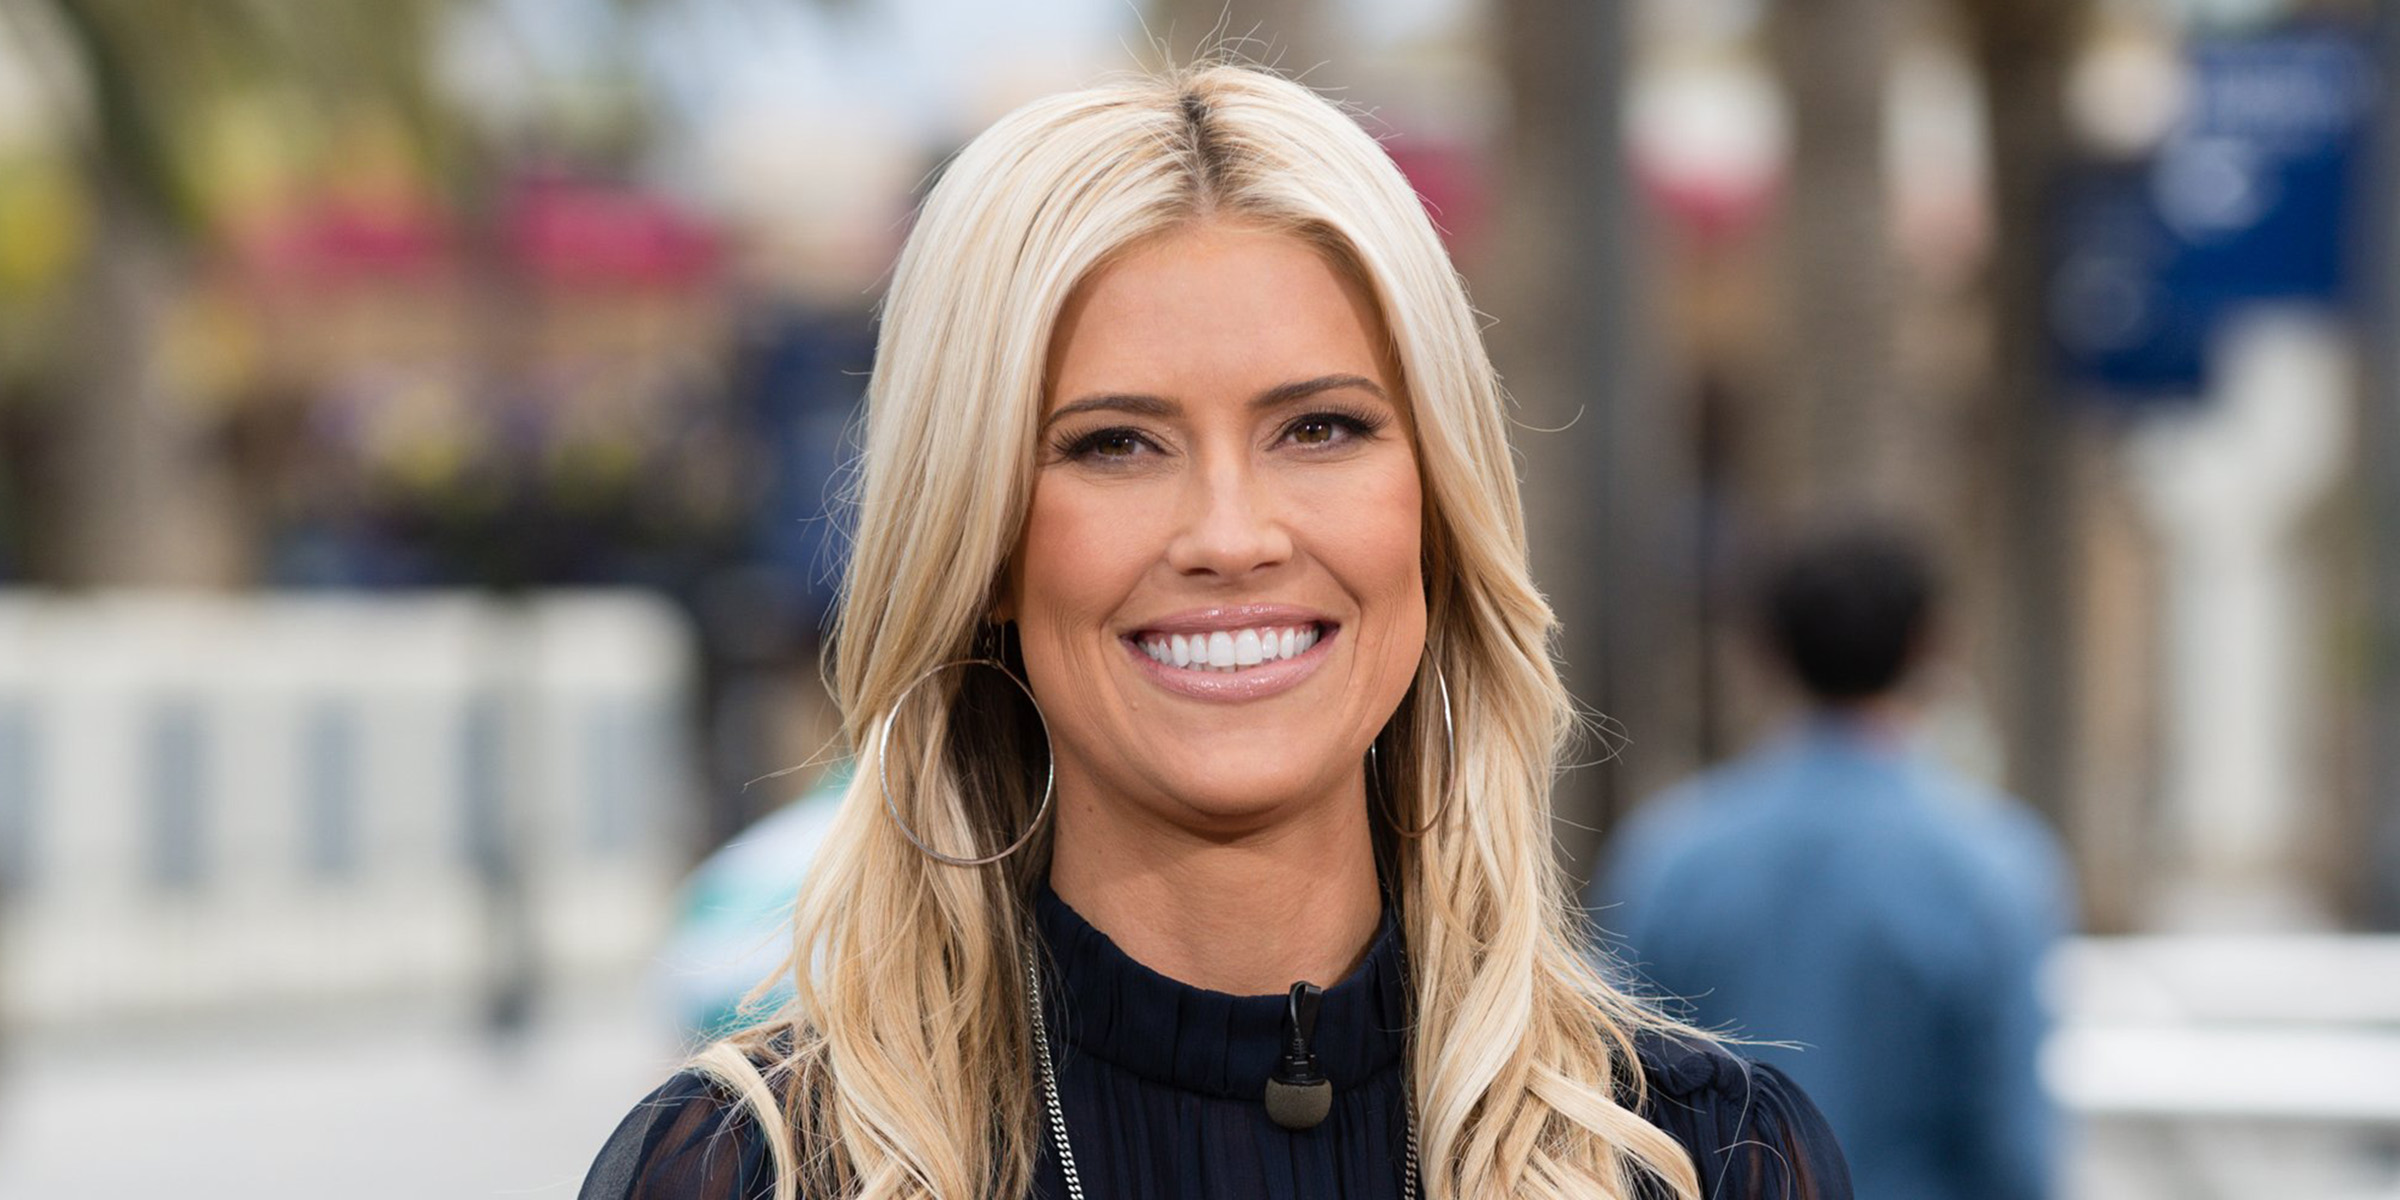 """Christina Anstead 'Flip or Flop' Star """"We are all struggling - some of us are just better at 'masking' it"""""""